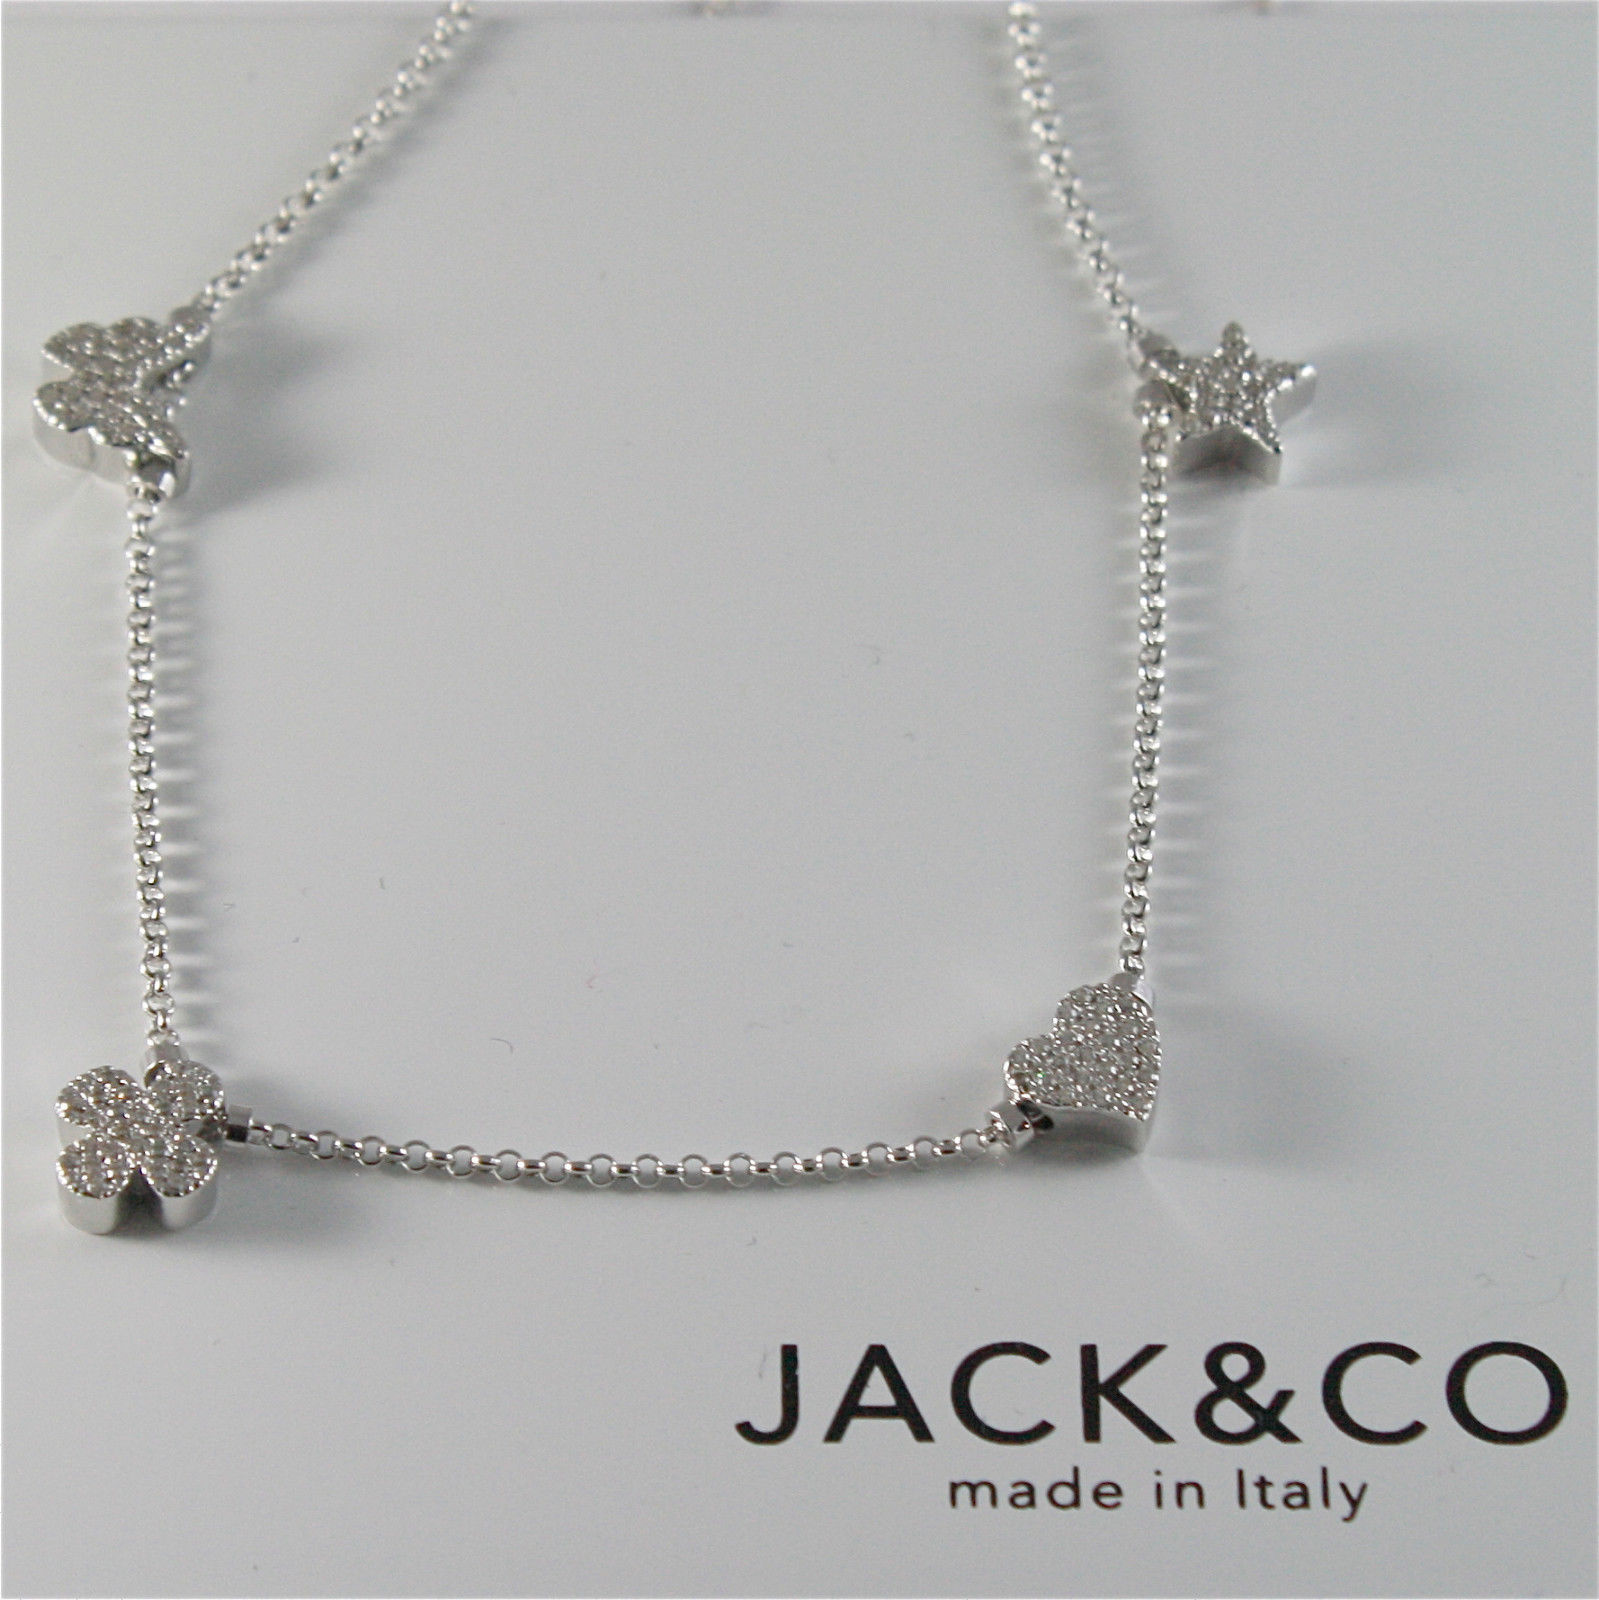 925 RHODIUM SILVER JACK&CO NECKLACE STAR BUTTERFLY HEART CLOVER MADE IN ITALY